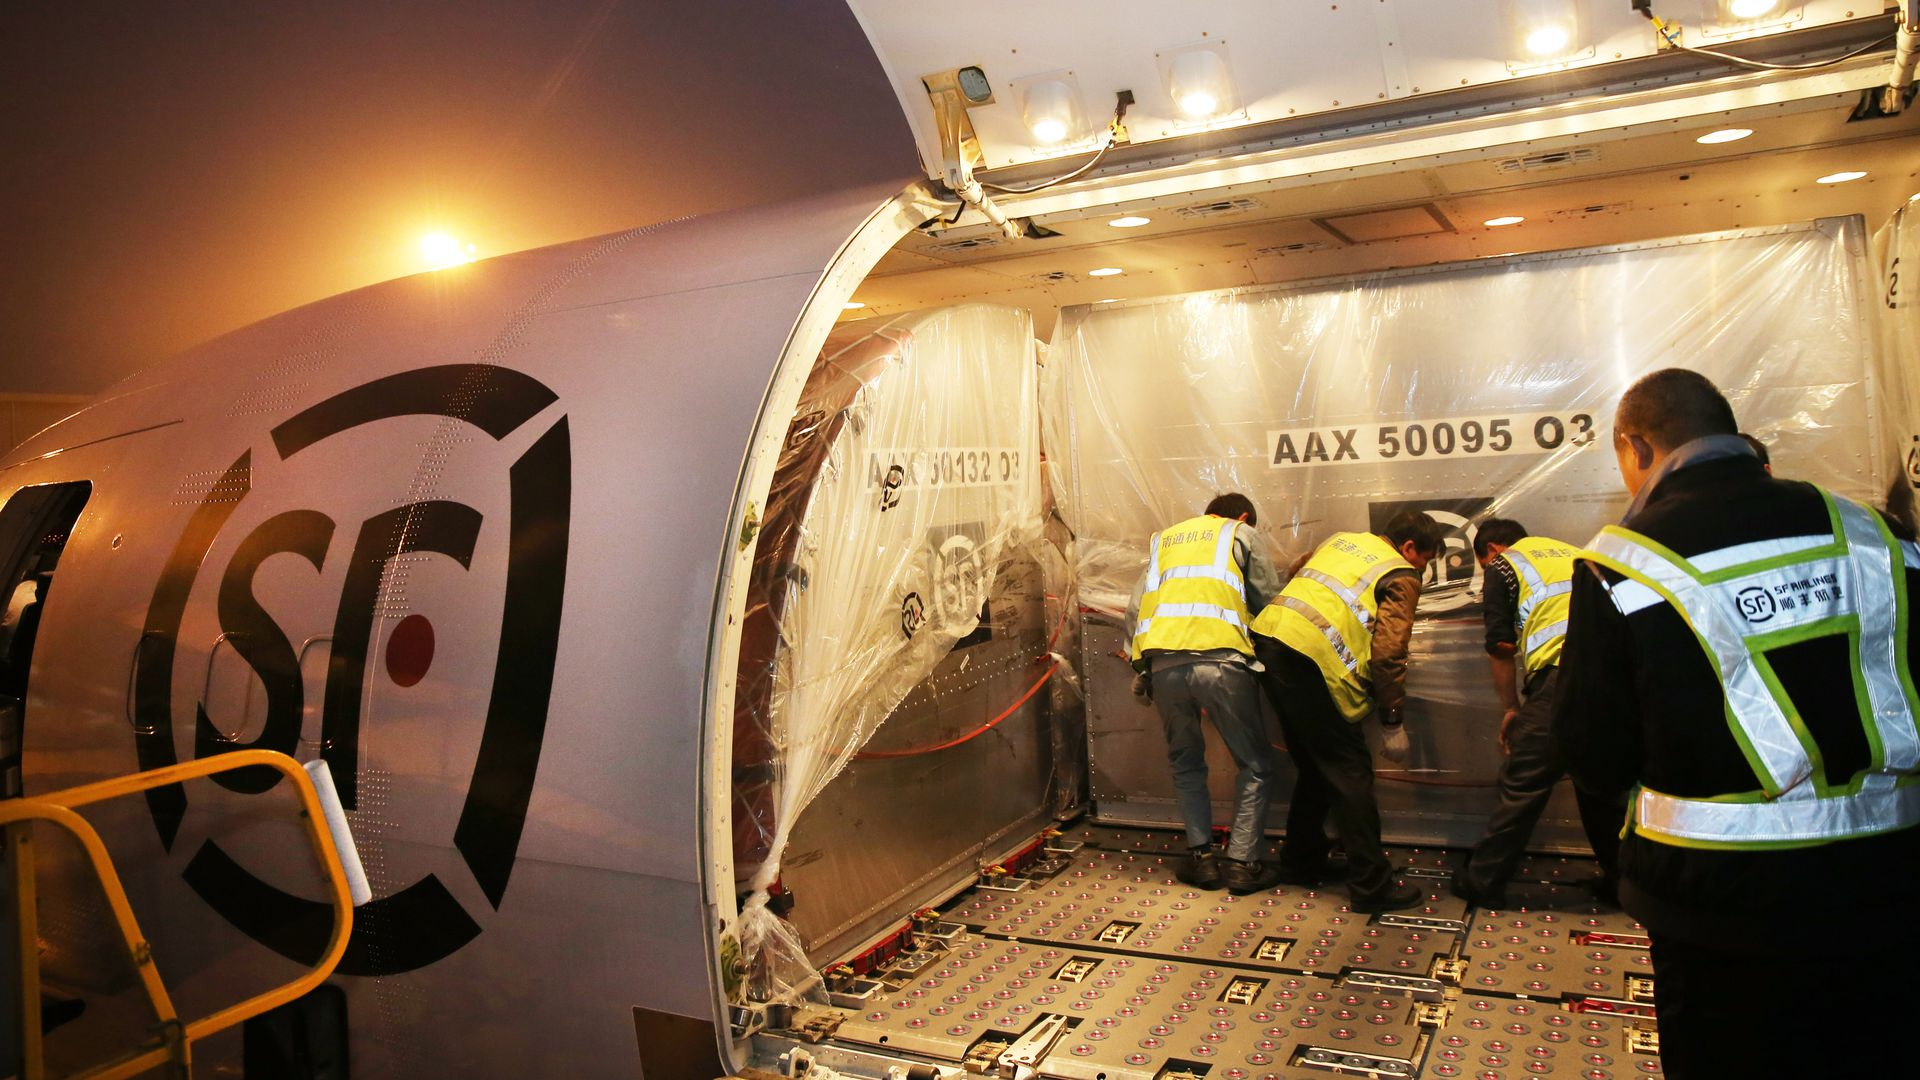 Crews help load parcels for delivery on SF airlines